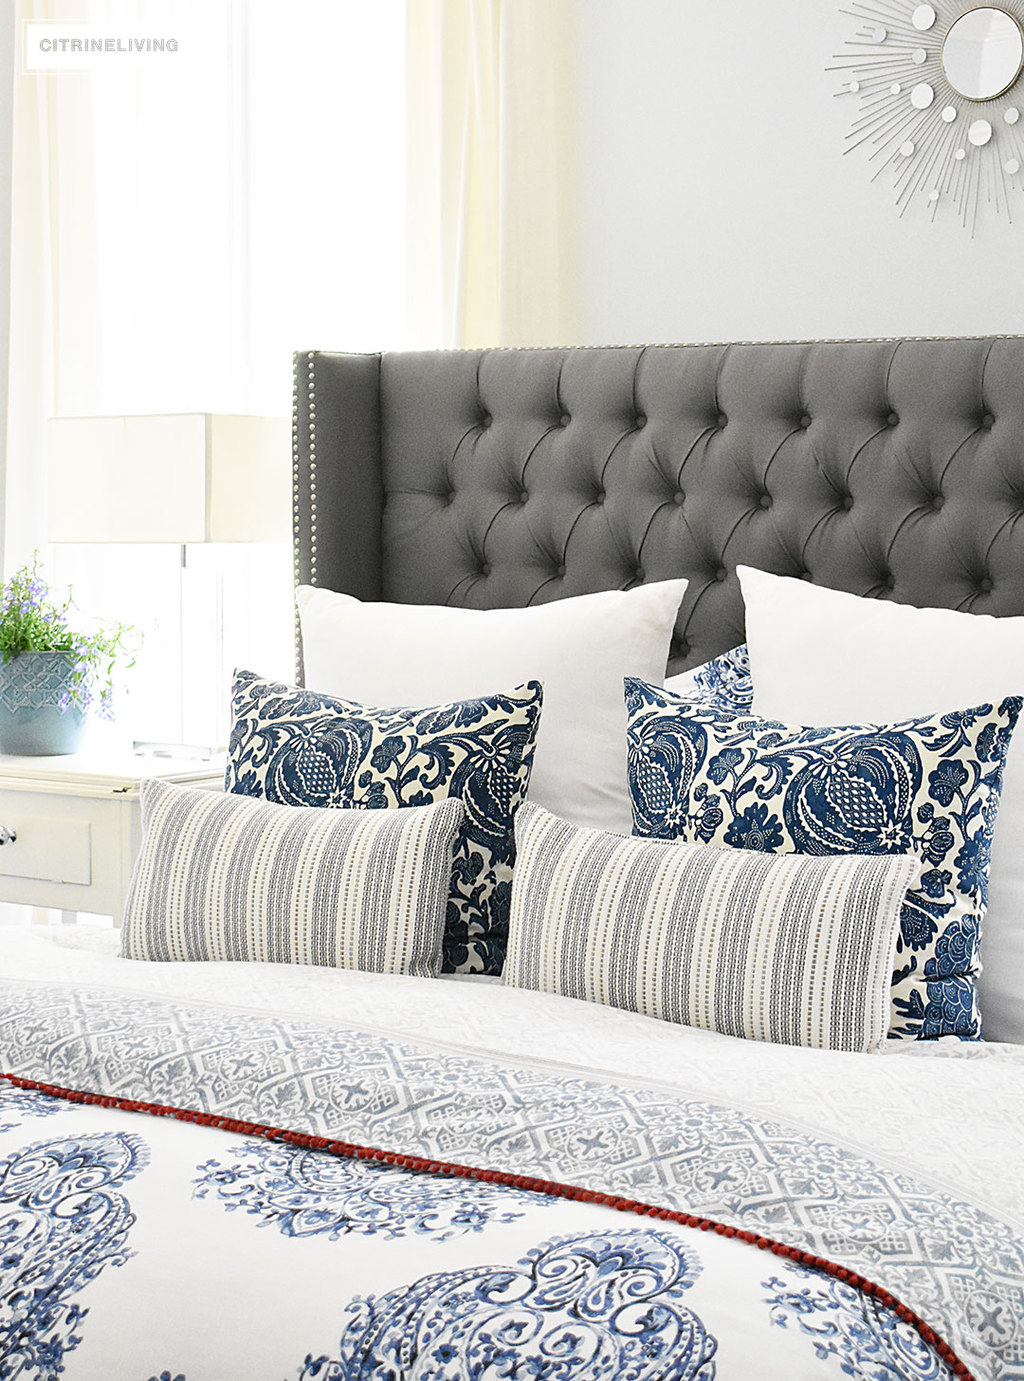 Blue and white Summer decorated bedroom with layers of bold pattern - batik, stripes and paisley - bring a casual, coastal look. Upholstered headboard with nailhead trim is classic and elegant. Light blue walls keep the look crisp and airy.